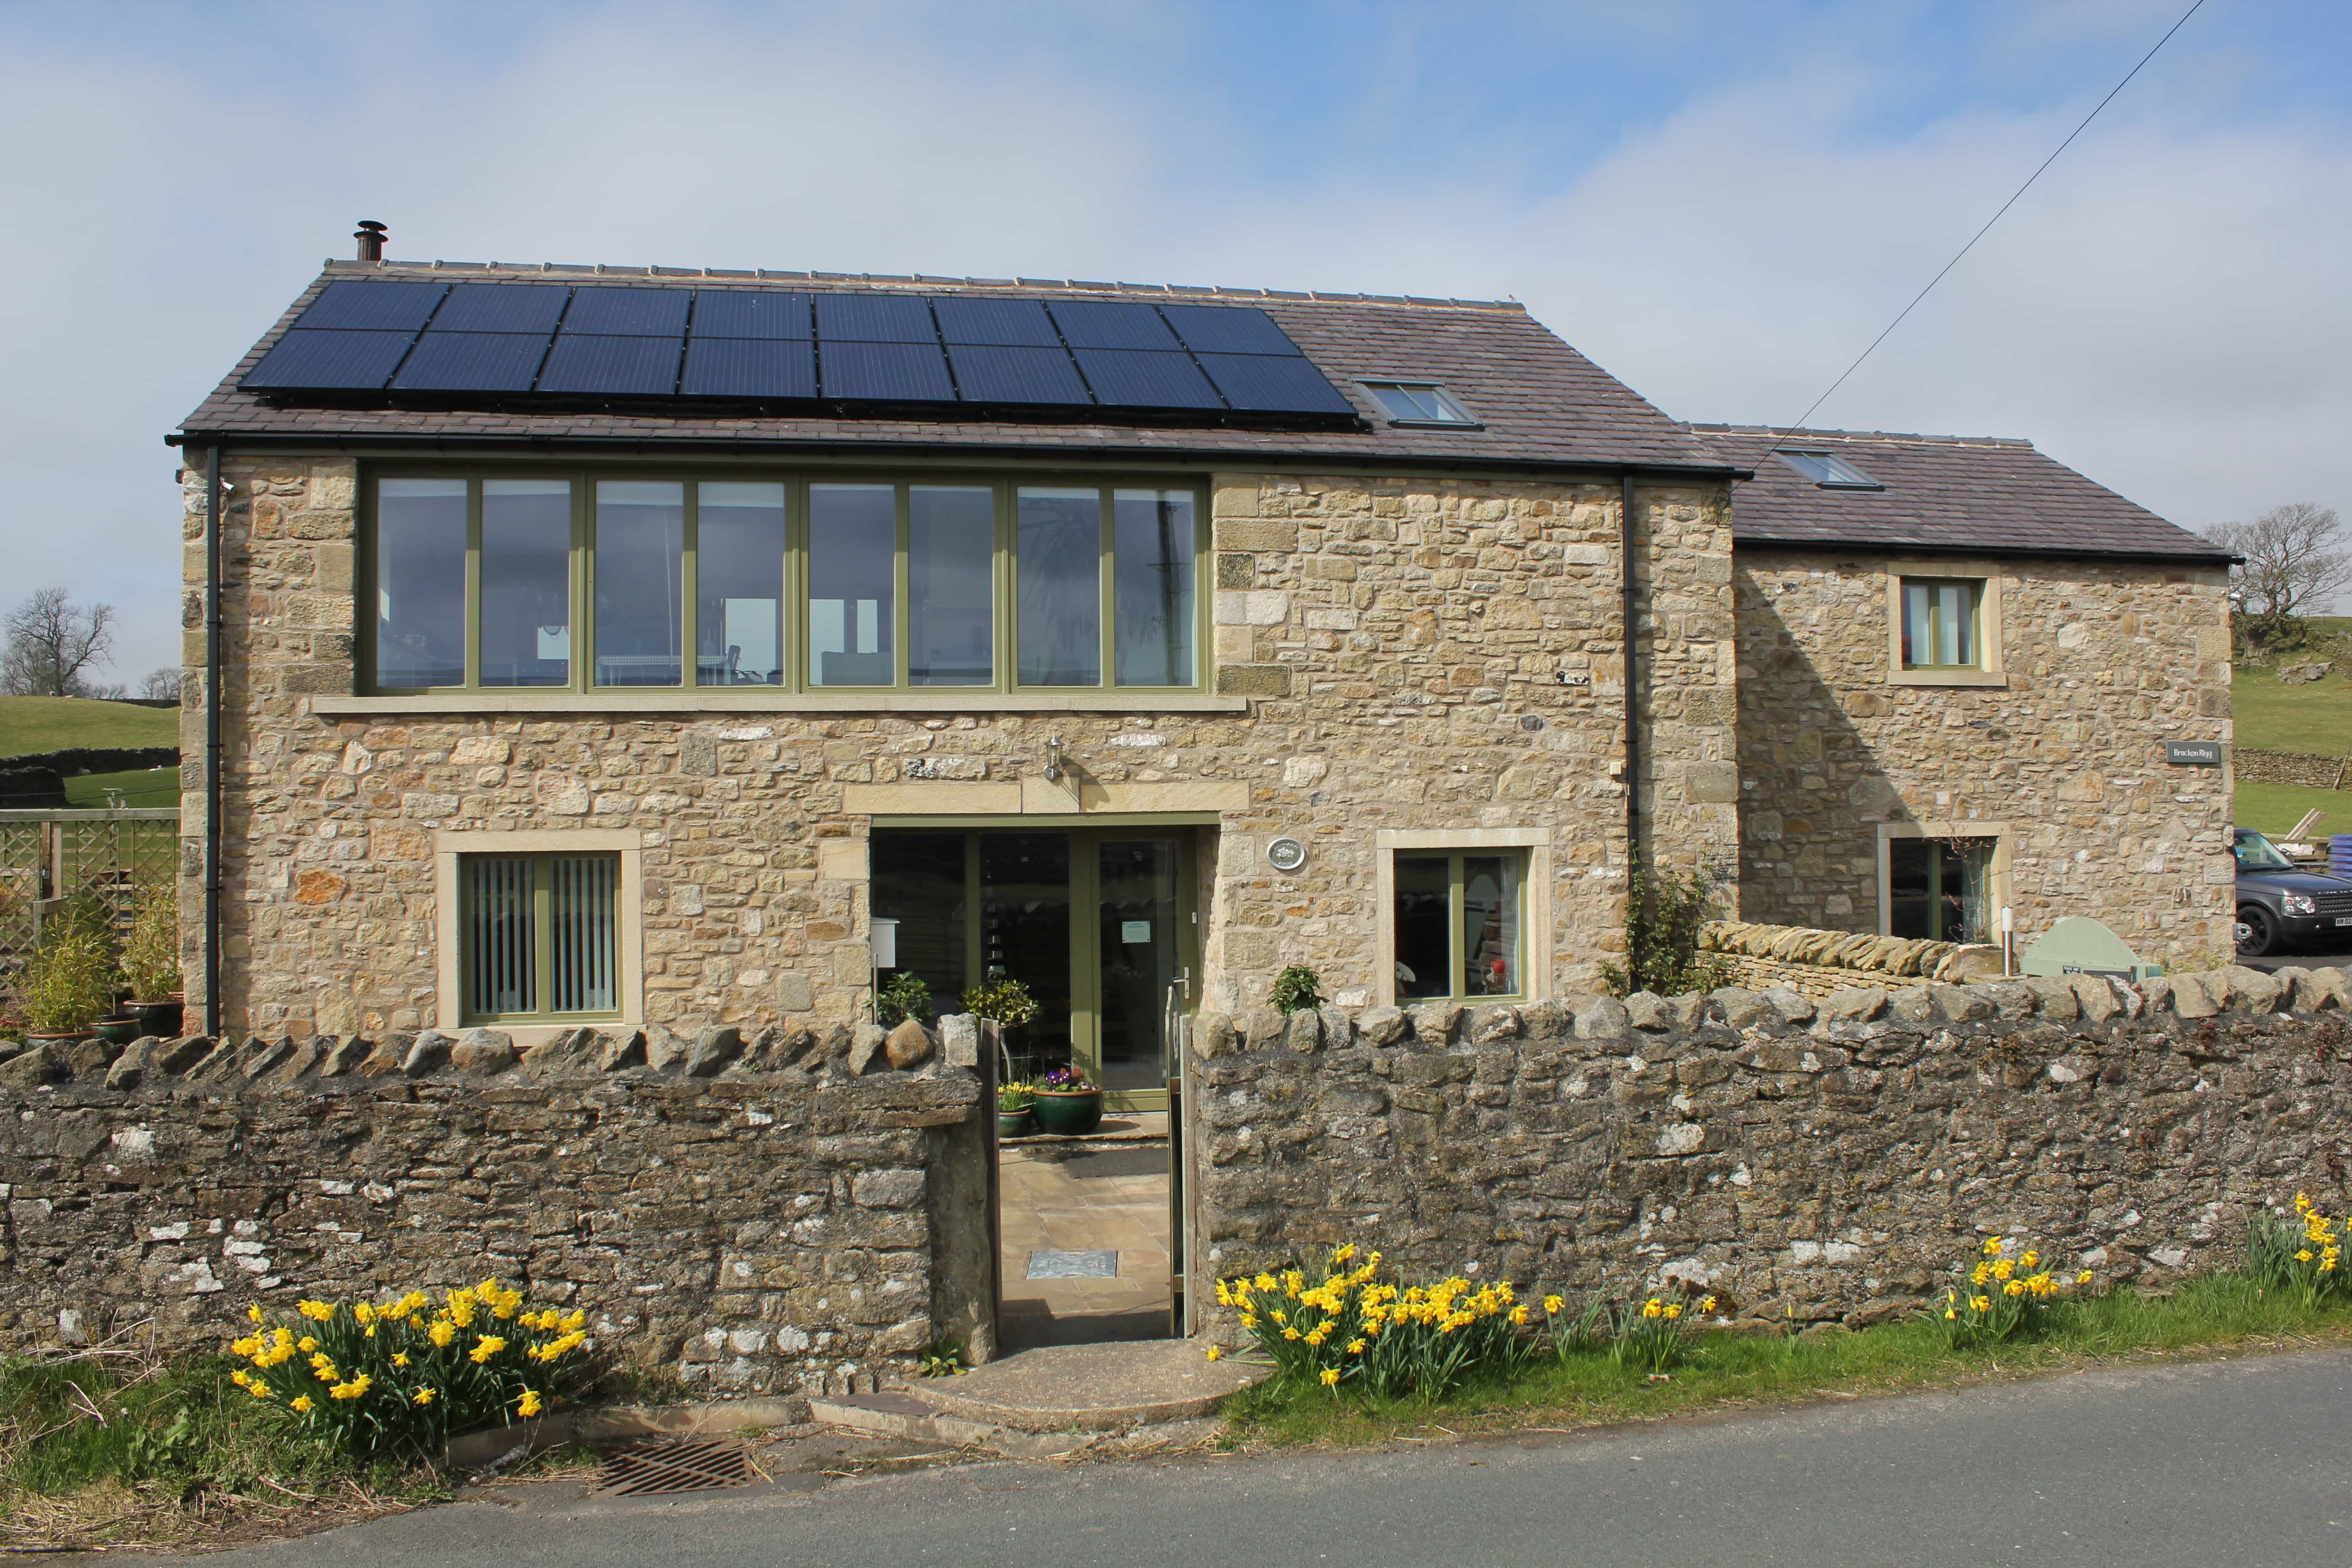 North Yorkshire Newbuild Home With Triple Glazed Windows